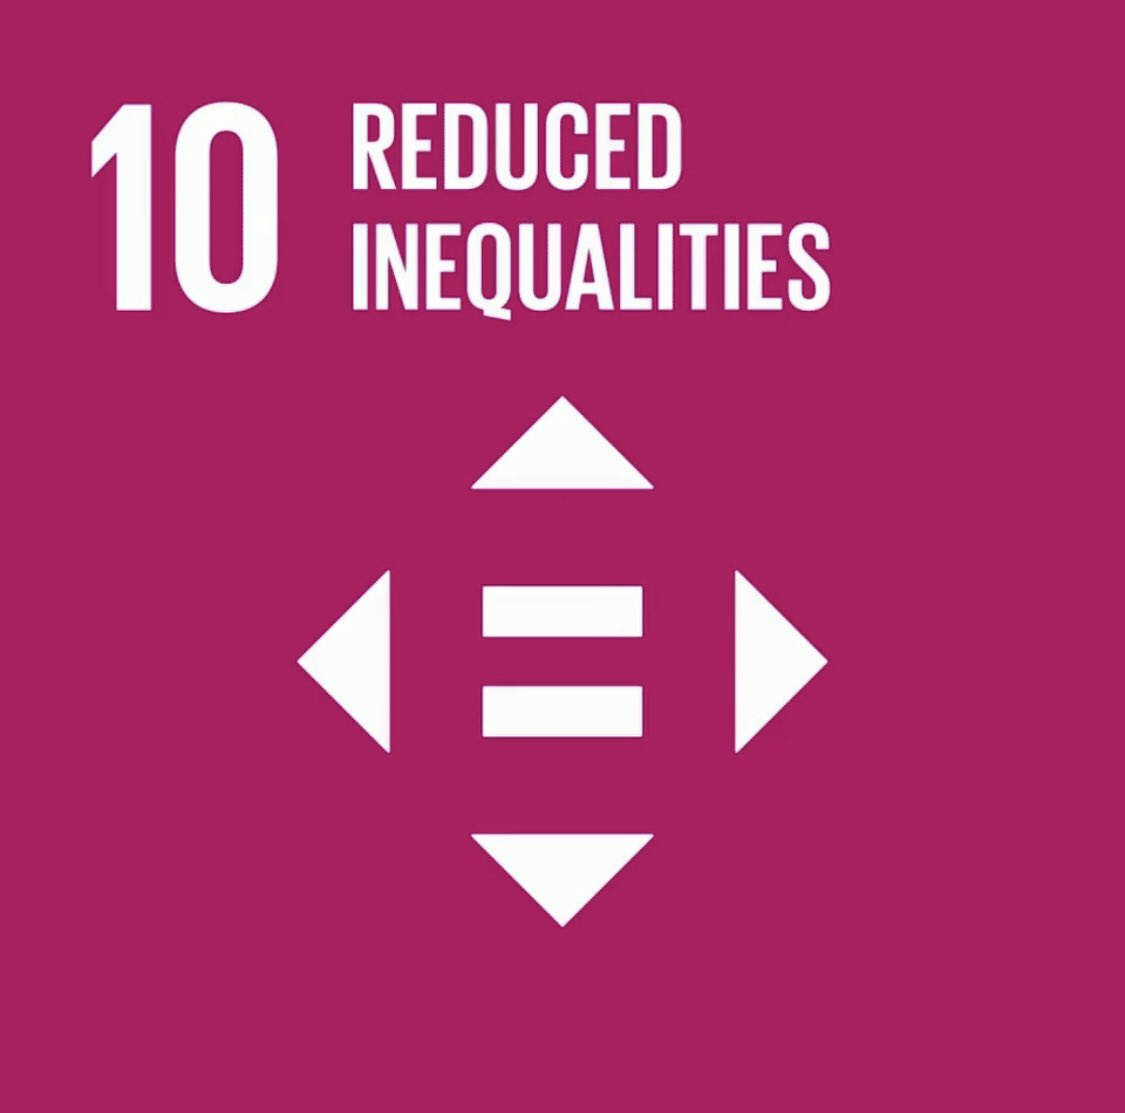 Inequality threatens long term social and economic development, challenges poverty reduction and destroys people's sense of fulfillment & self-worth. It is very important to reduce inequalities within and among countries.   #SDG10 #UN75 #GlobalGoals #Agenda2030  #bkdfoundation